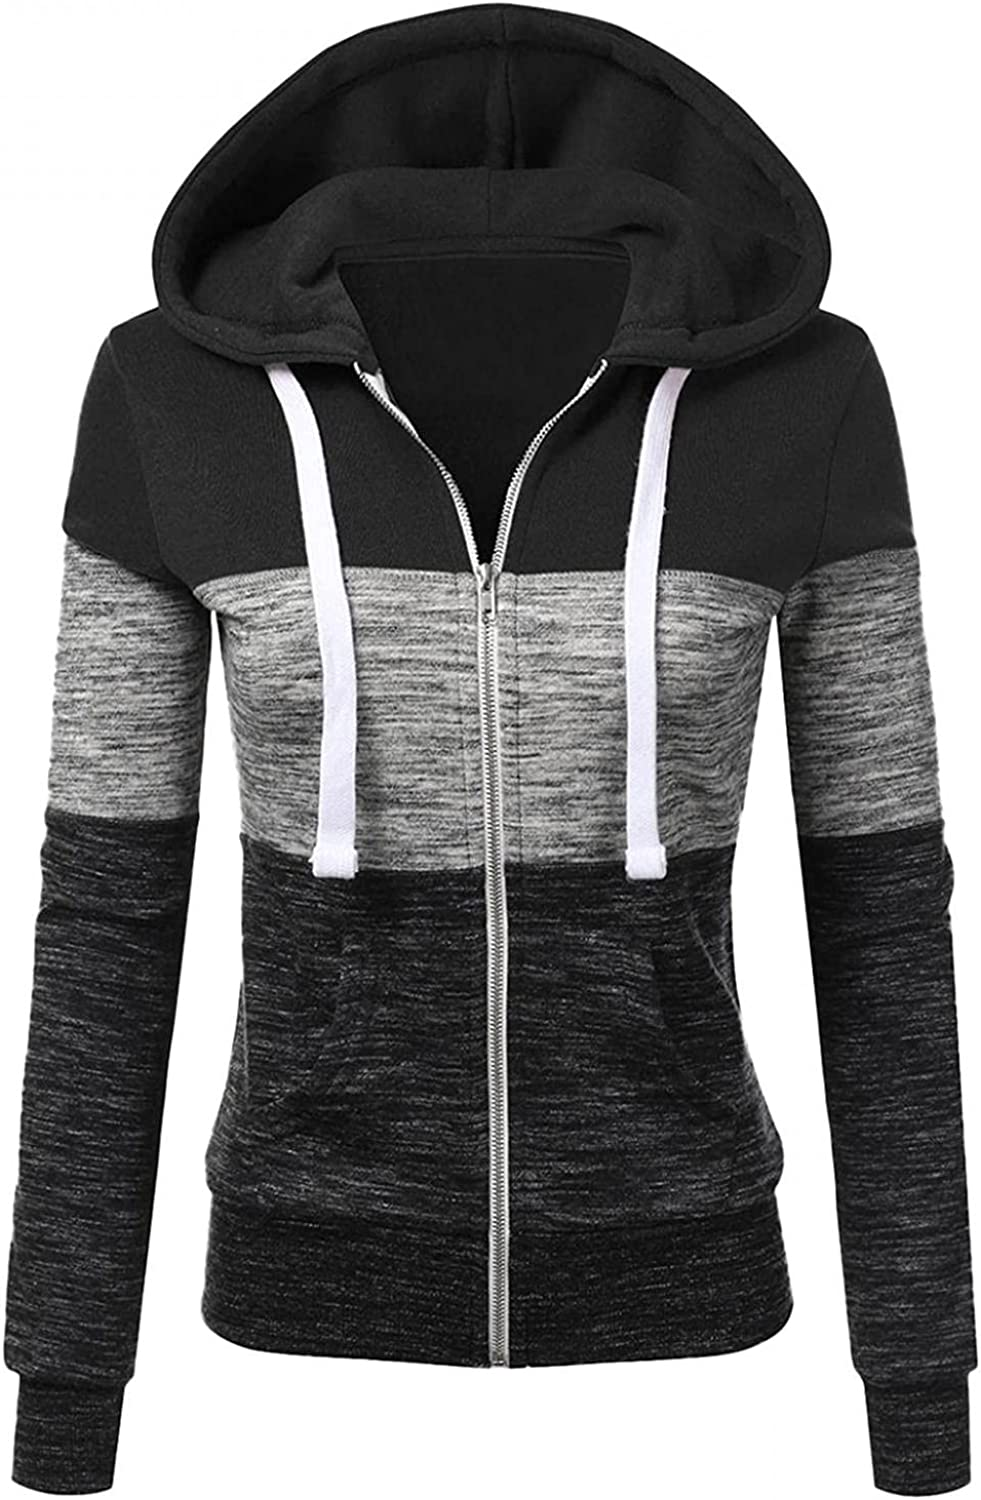 Sweatshirts for Women,Womens Color Block Hoodie Sweatshirts Stitching Color Drawstring Pullover Casual Tops